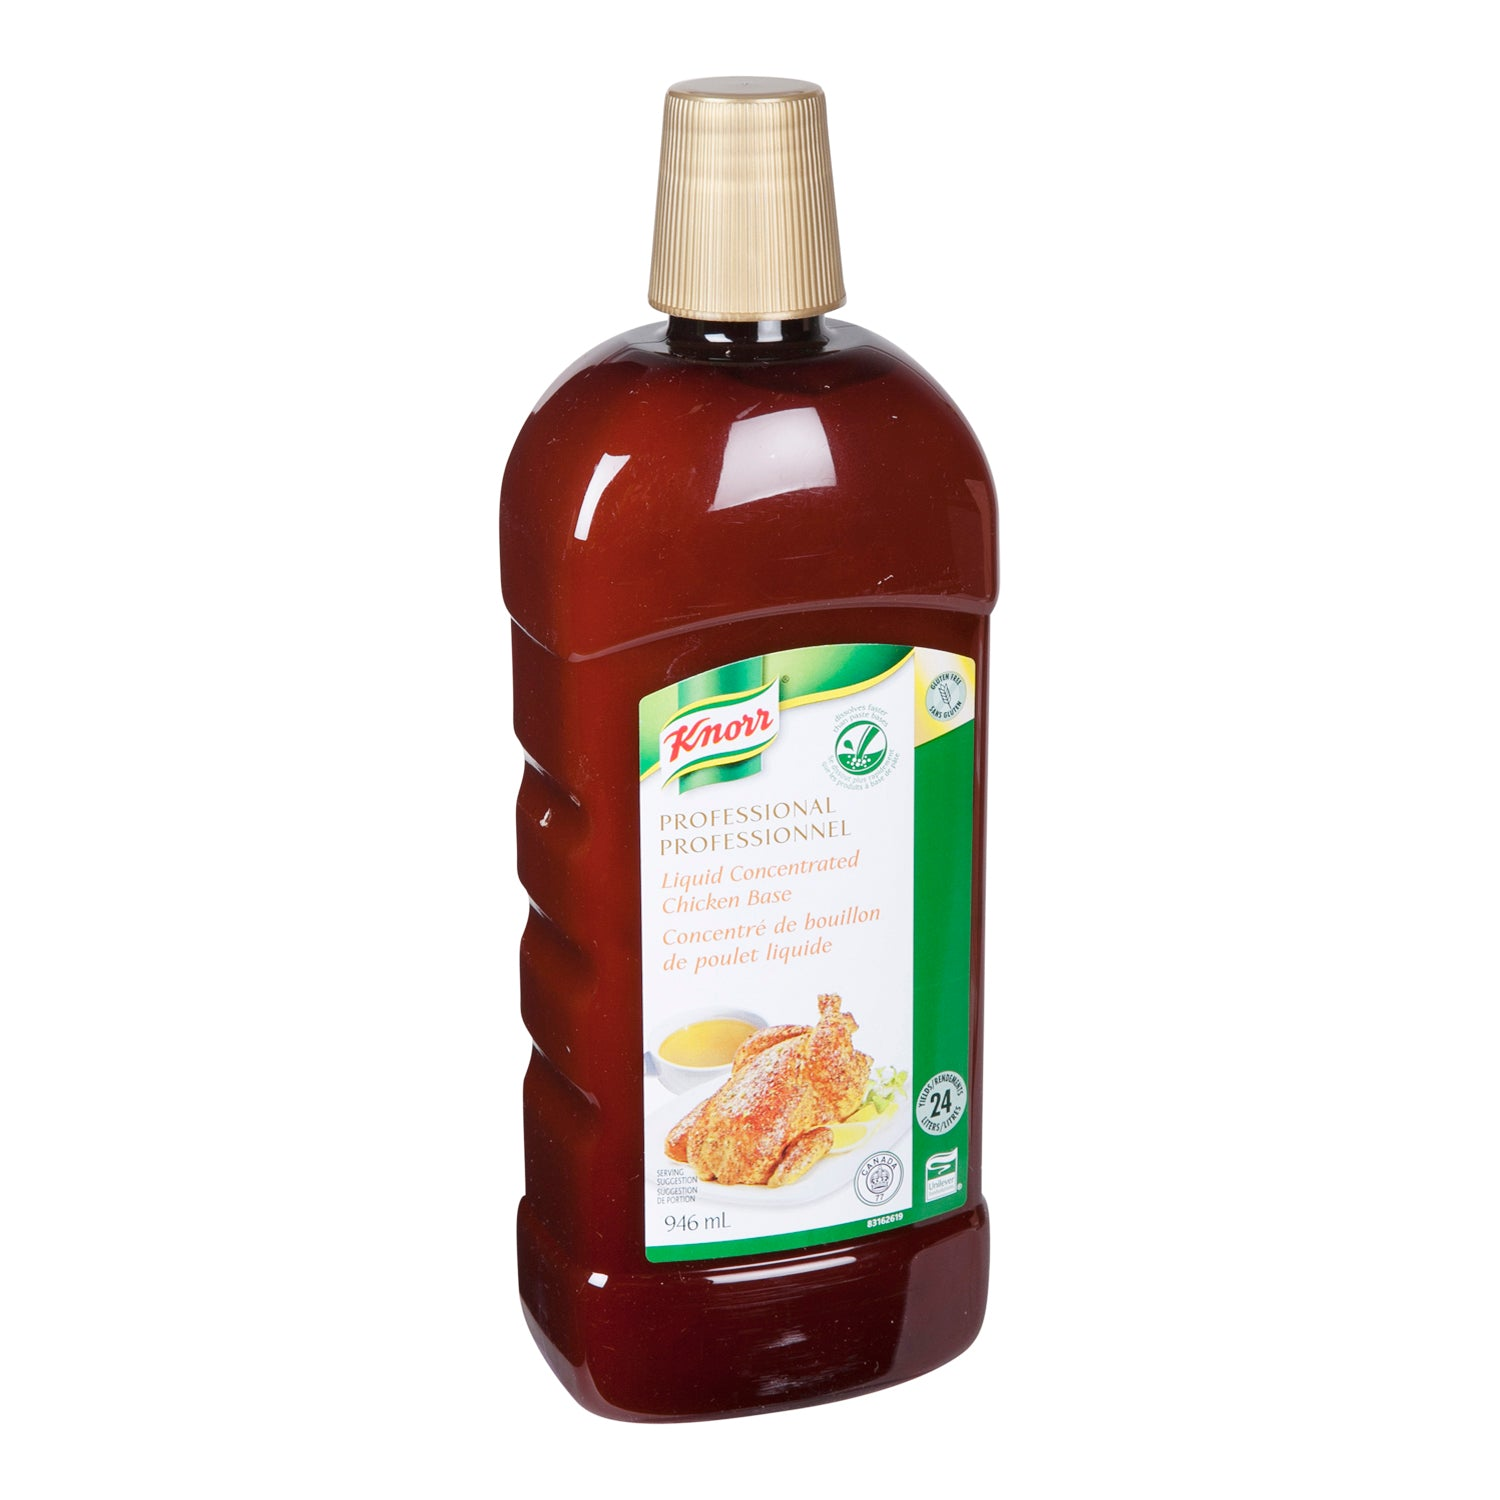 Knorr Professional Liquid Concentrated Chicken Base 946 ml - 4 Pack [$17.50/each]